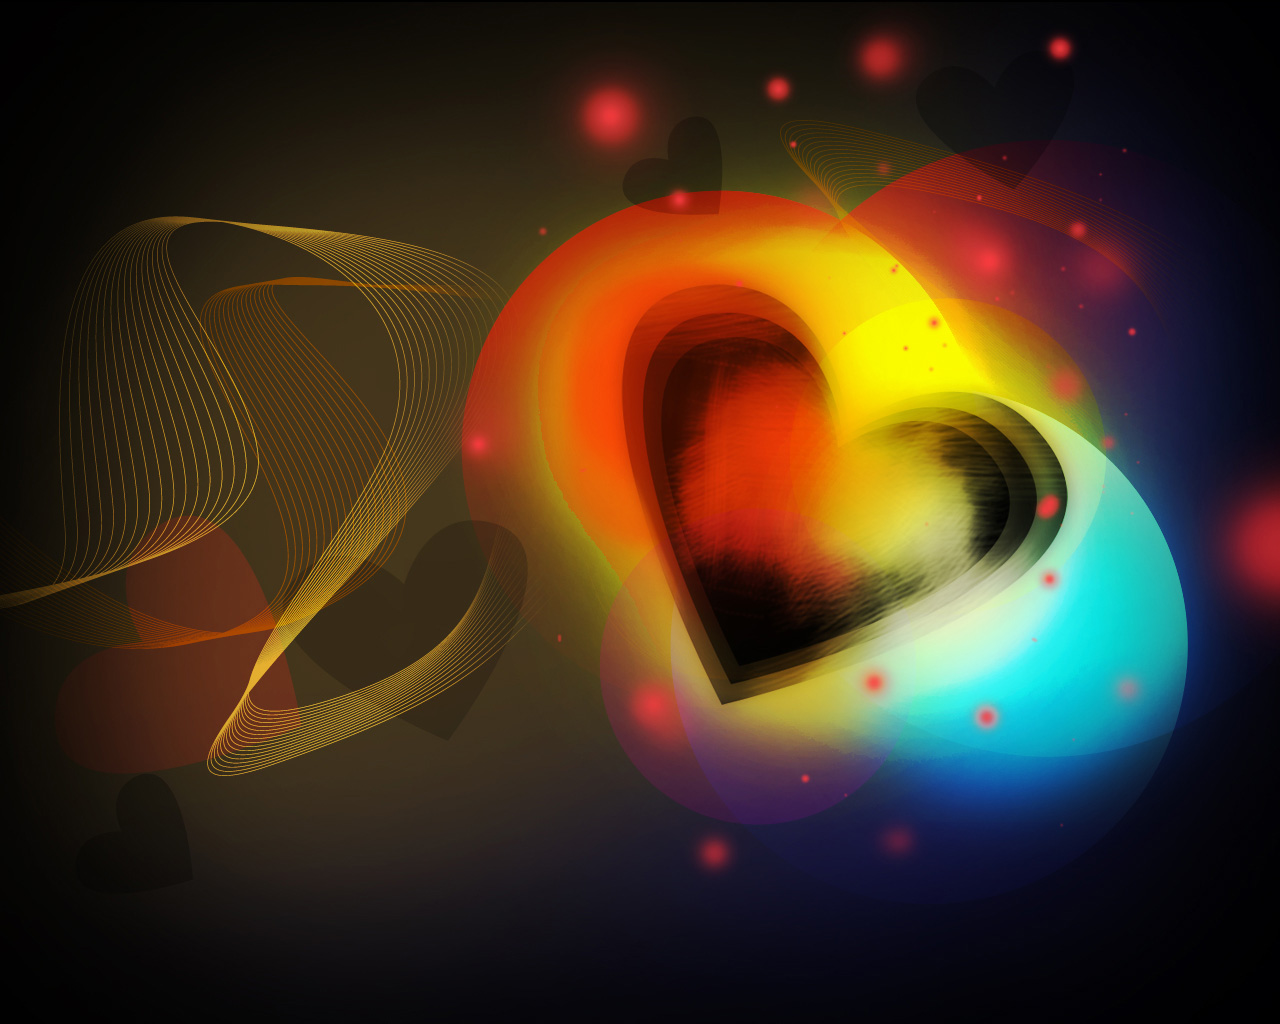 How to create colorful valentines day card with shining heart in download baditri Images